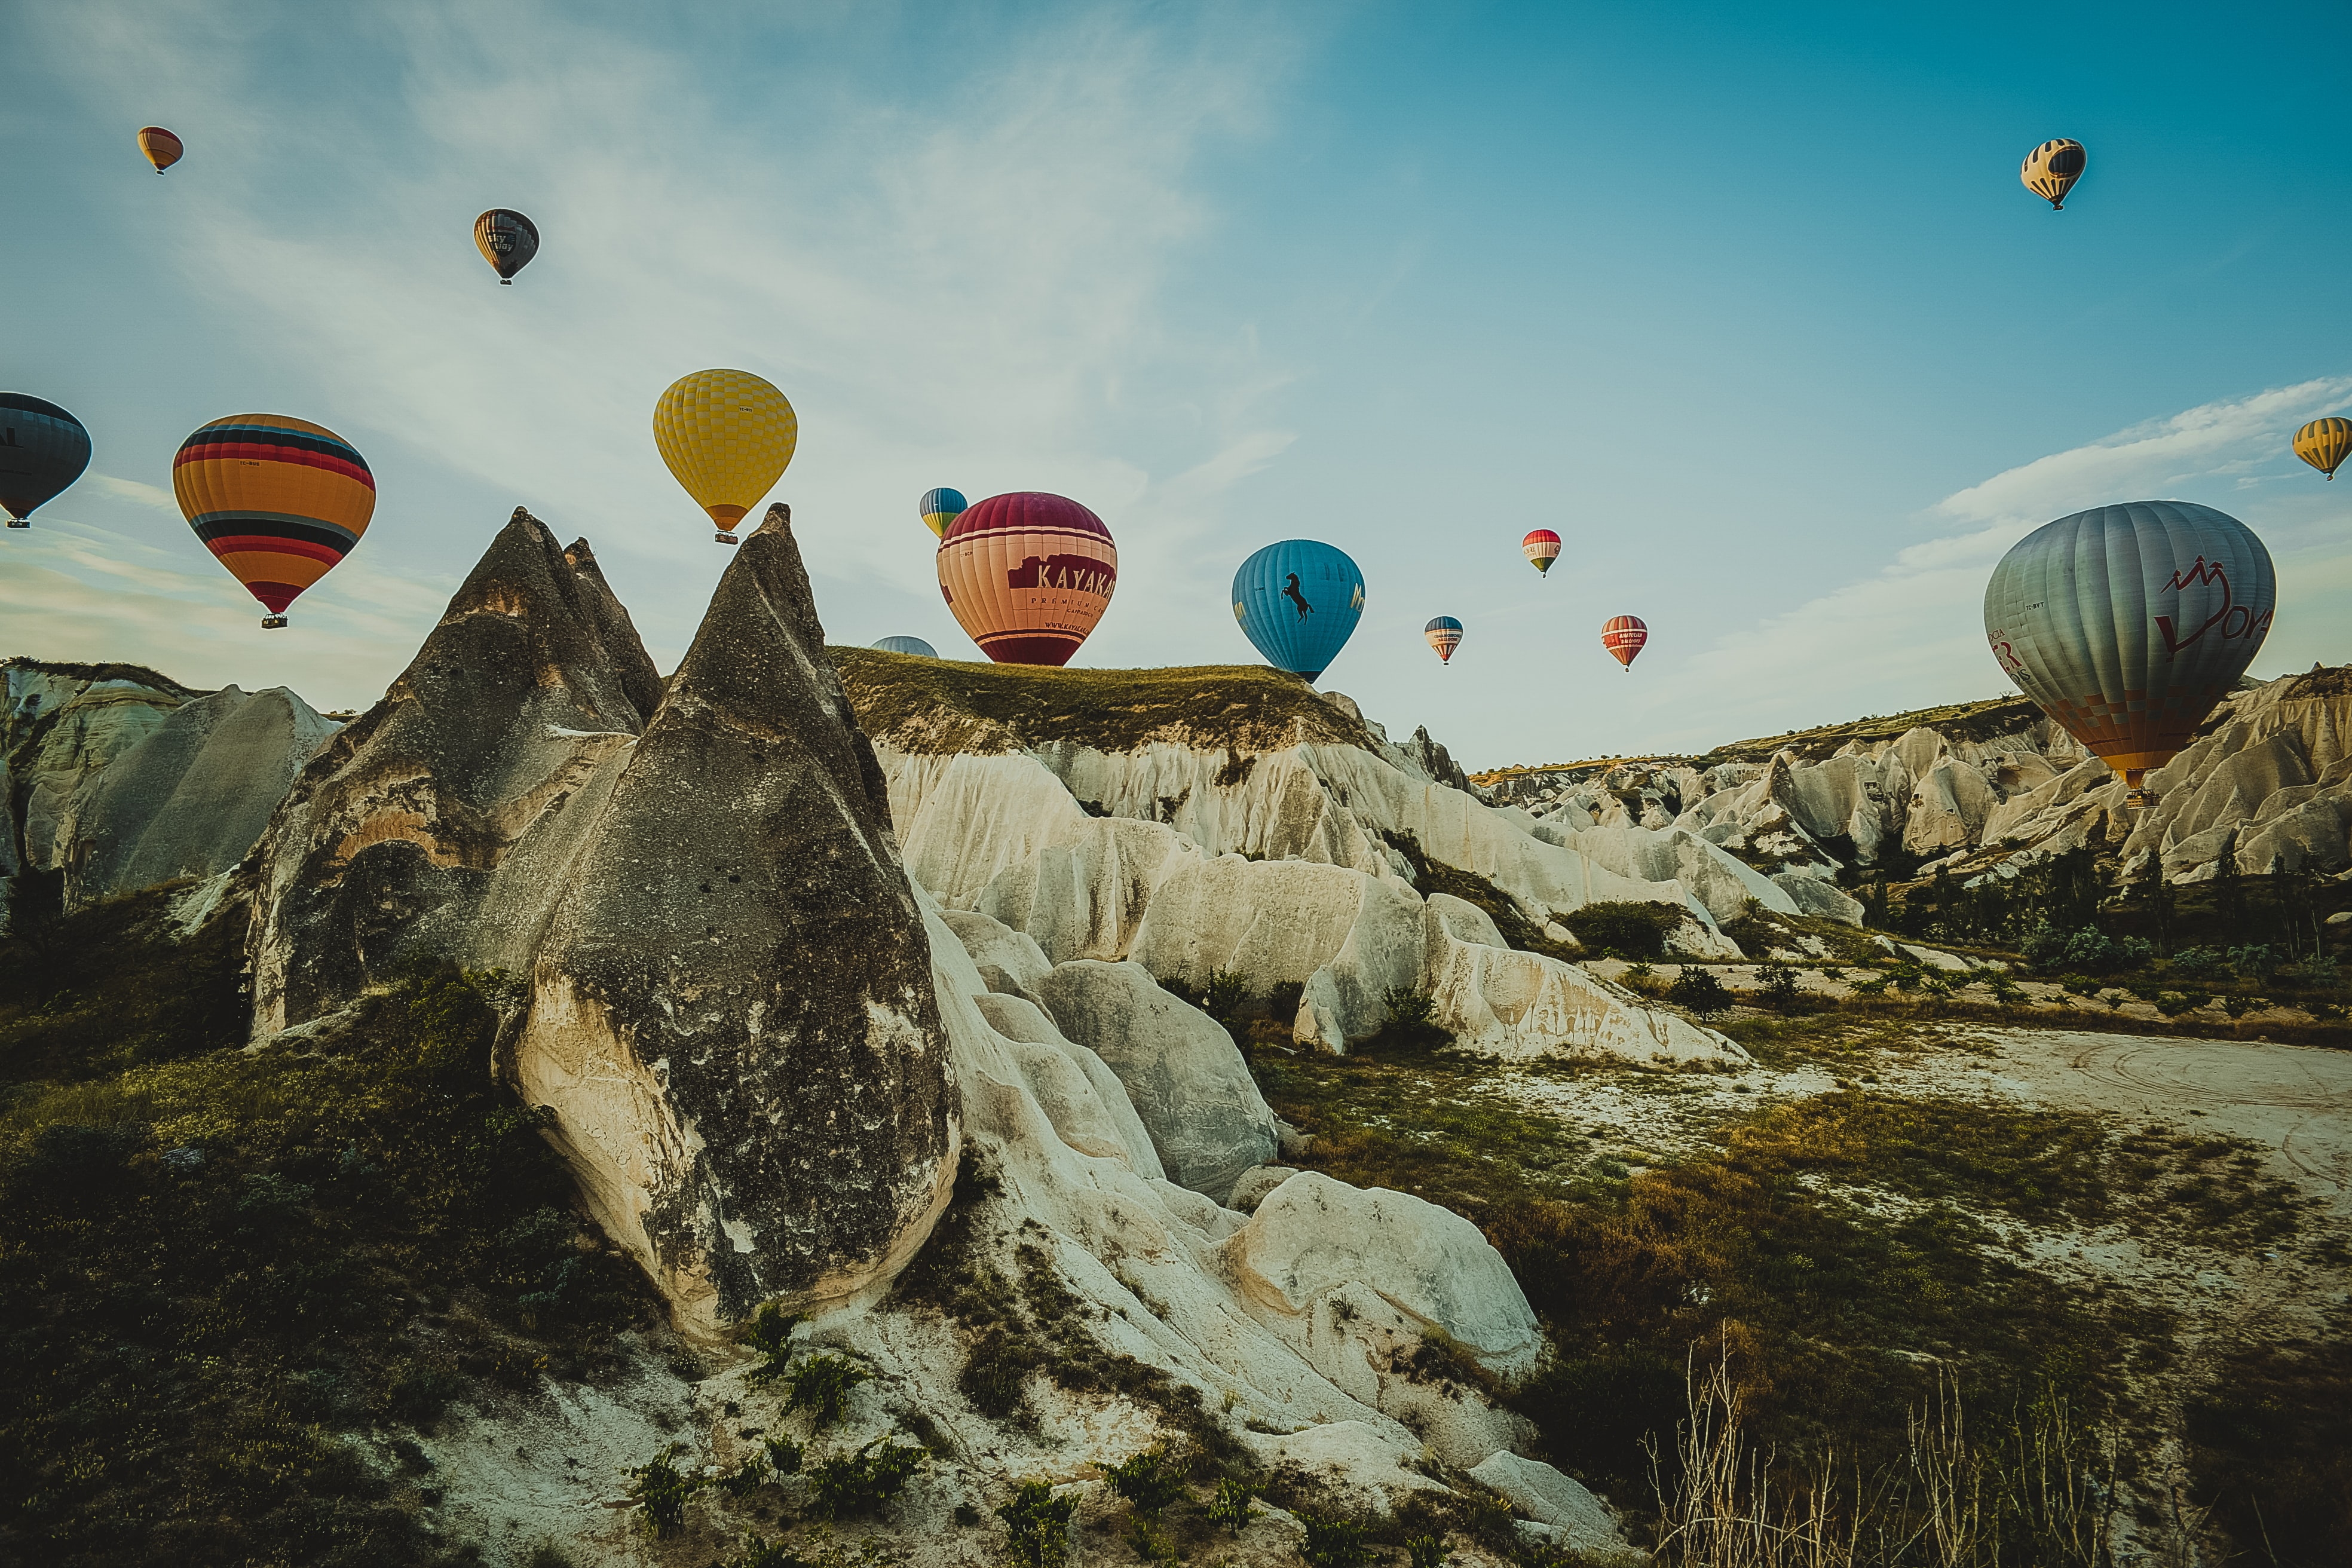 assorted hot air balloon in flight during daytime